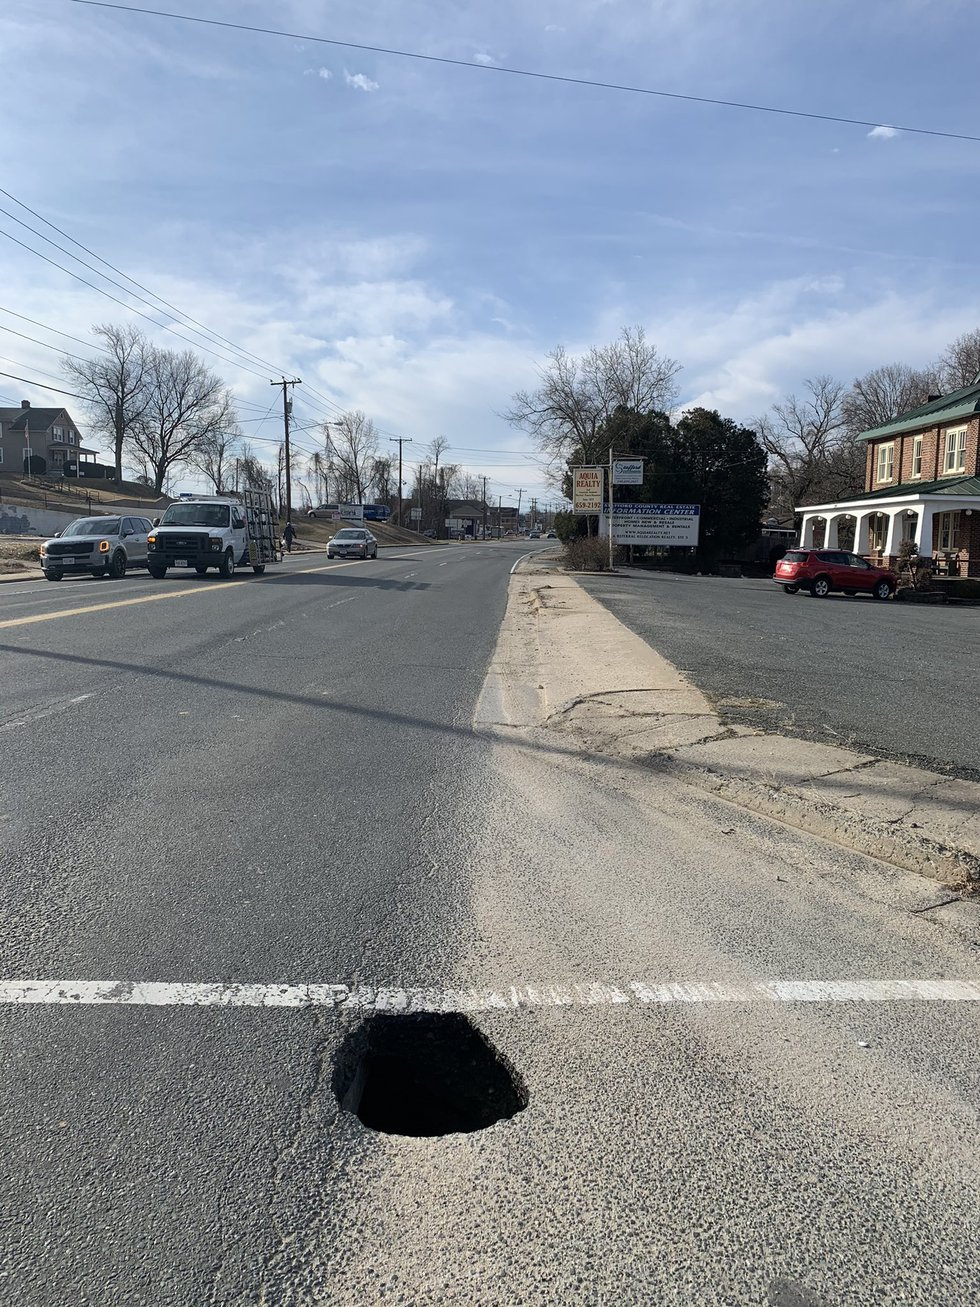 Photos posted by the Stafford County Sheriff's Office show a sinkhole that has formed near...